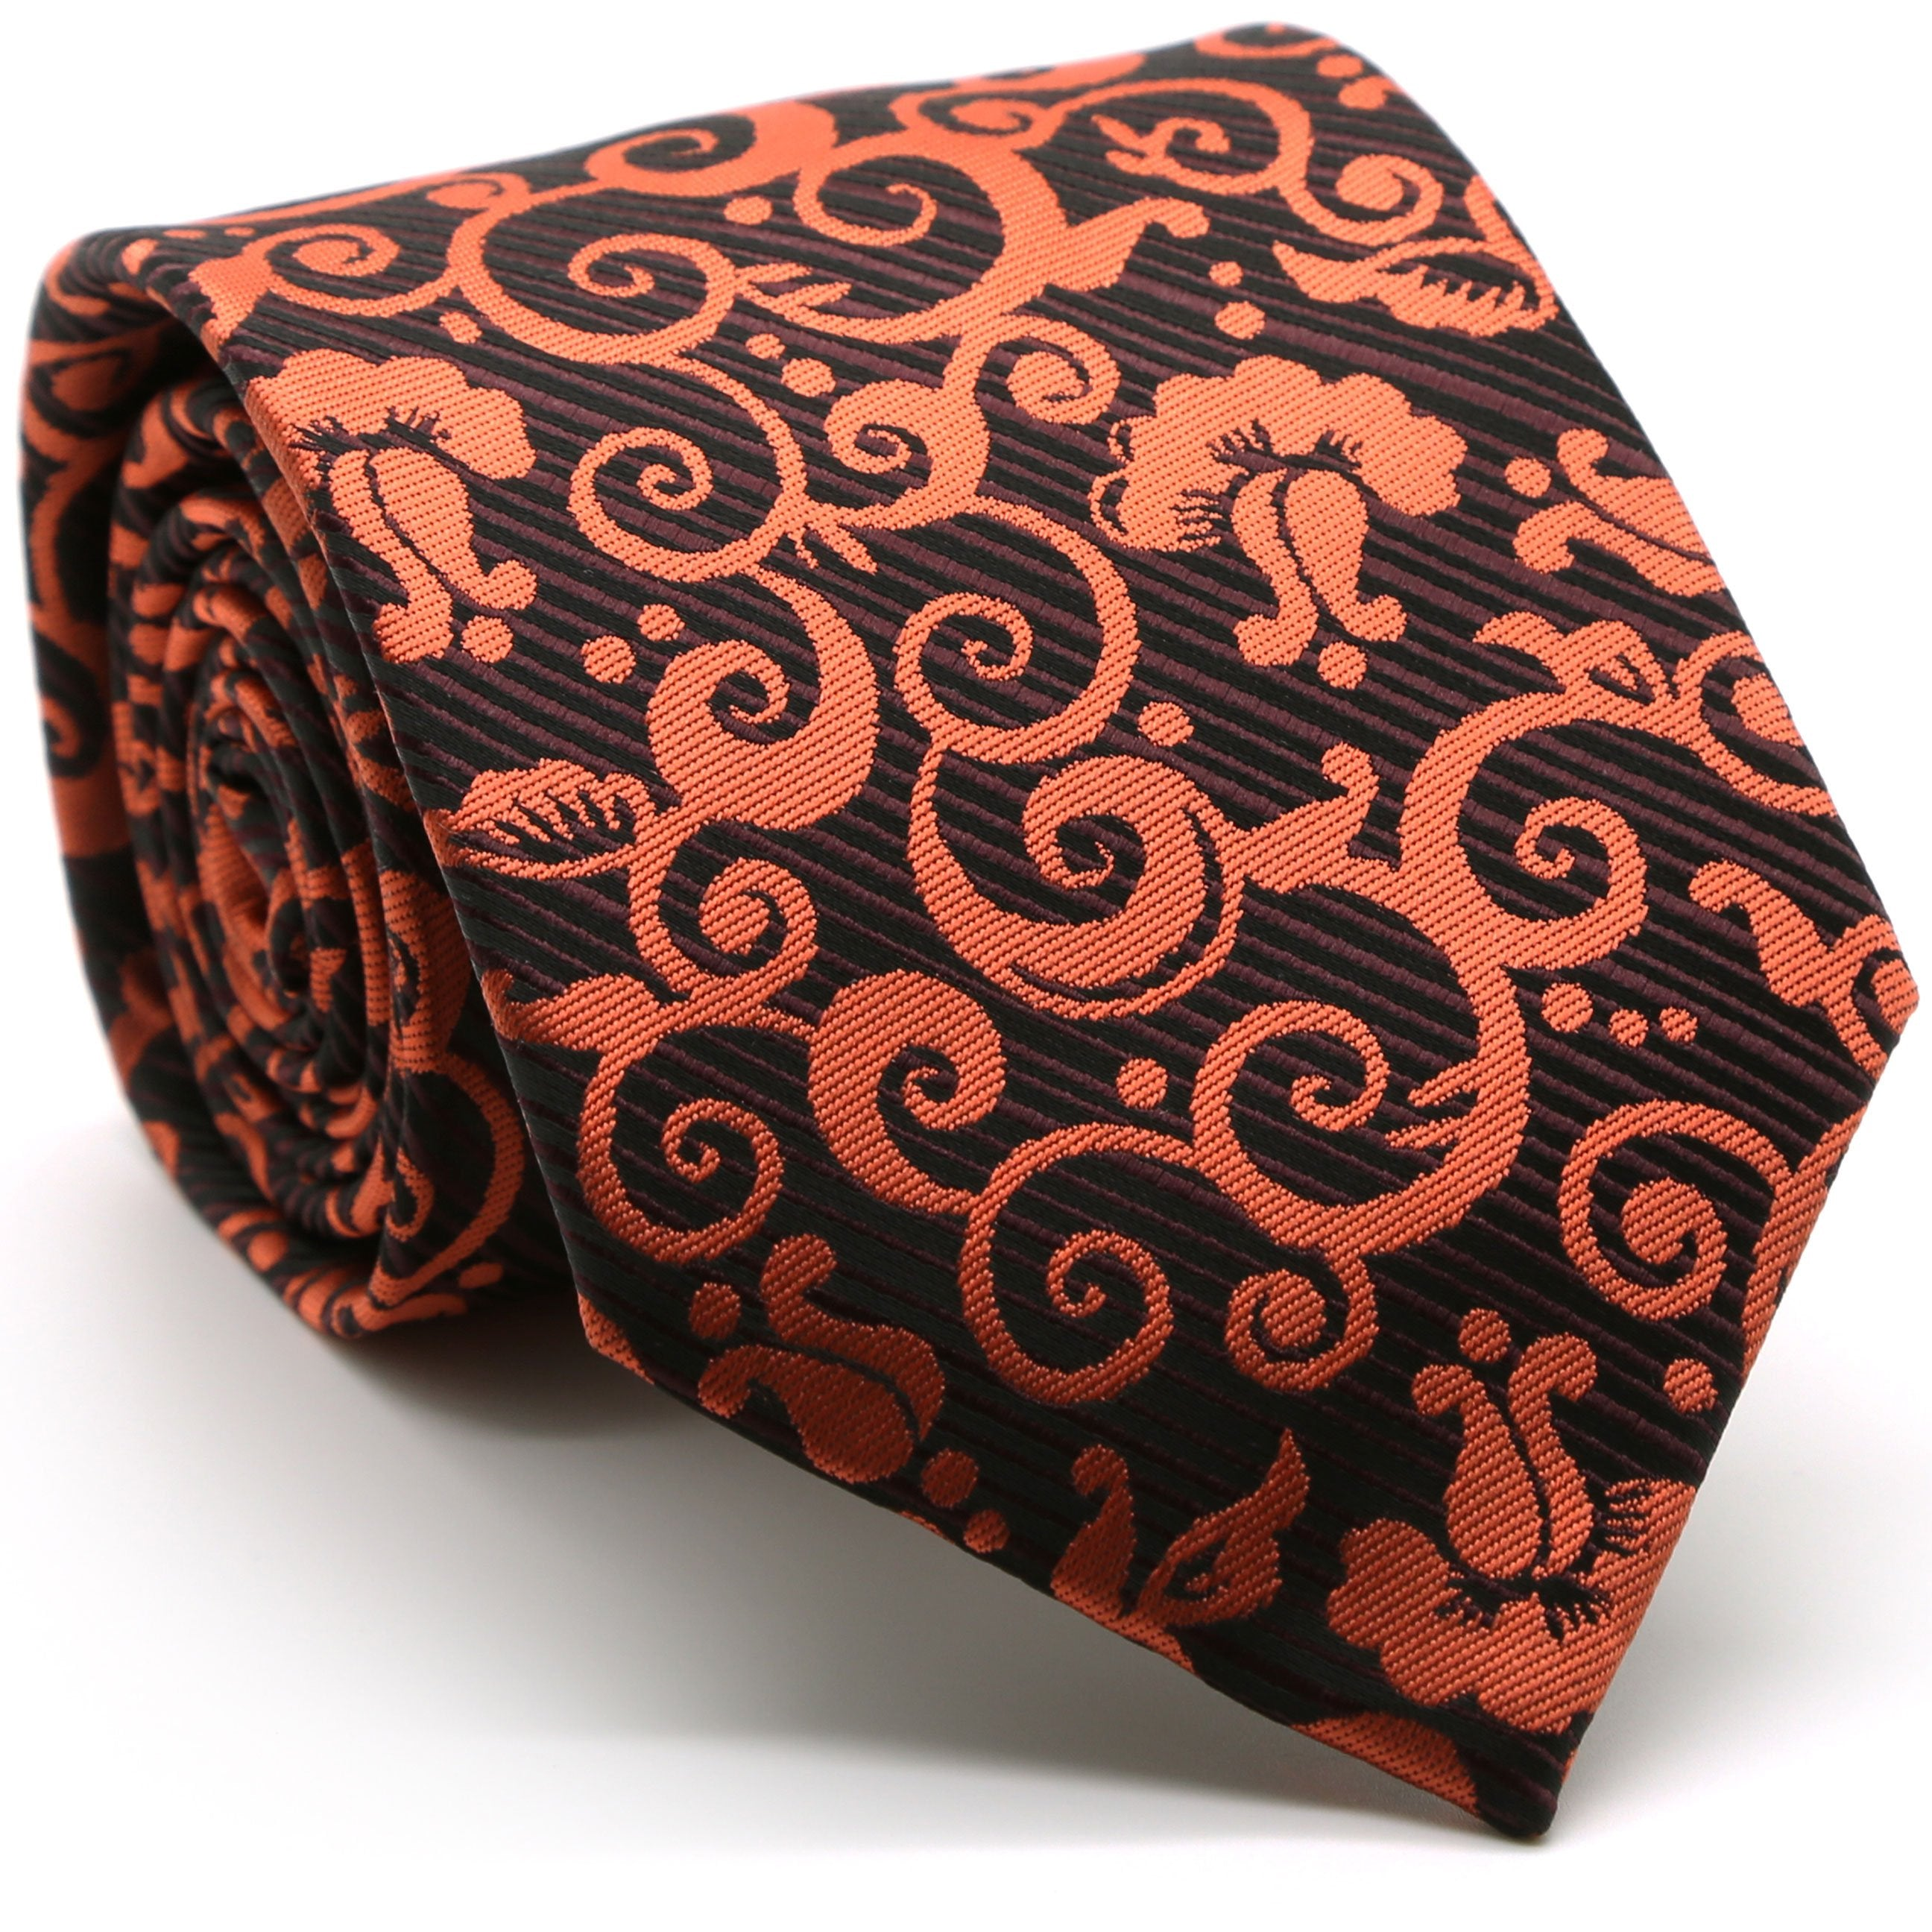 Mens Dads Classic Orange Paisley Pattern Business Casual Necktie & Hanky Set FO-5 - Giorgio's Menswear